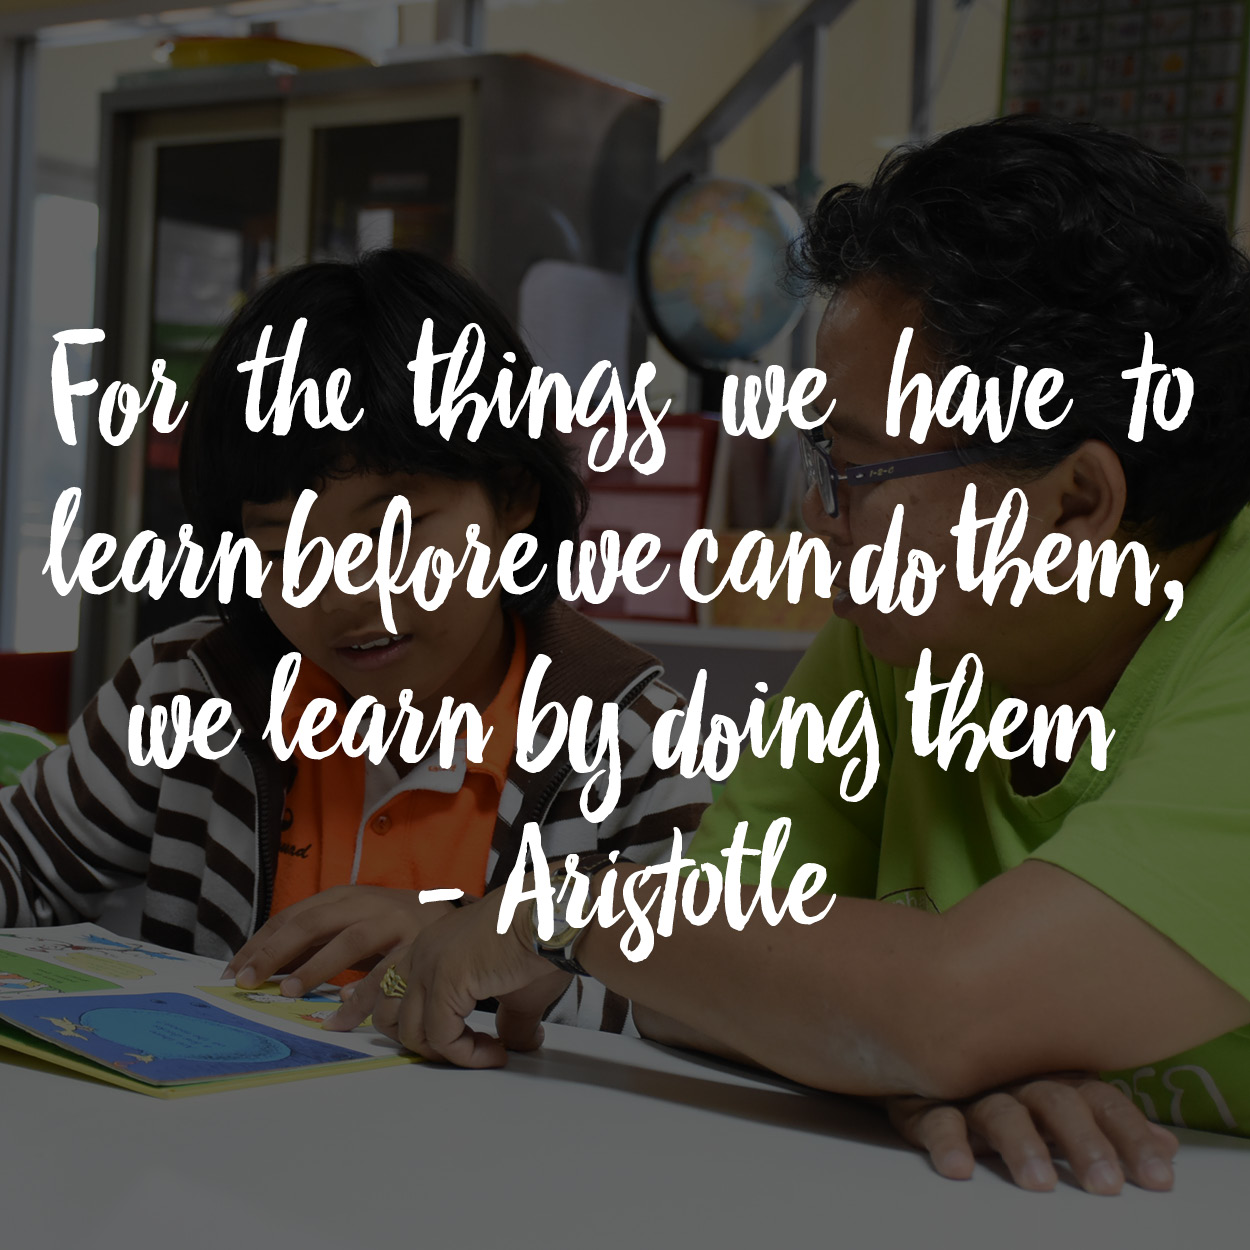 quote about learning by doing